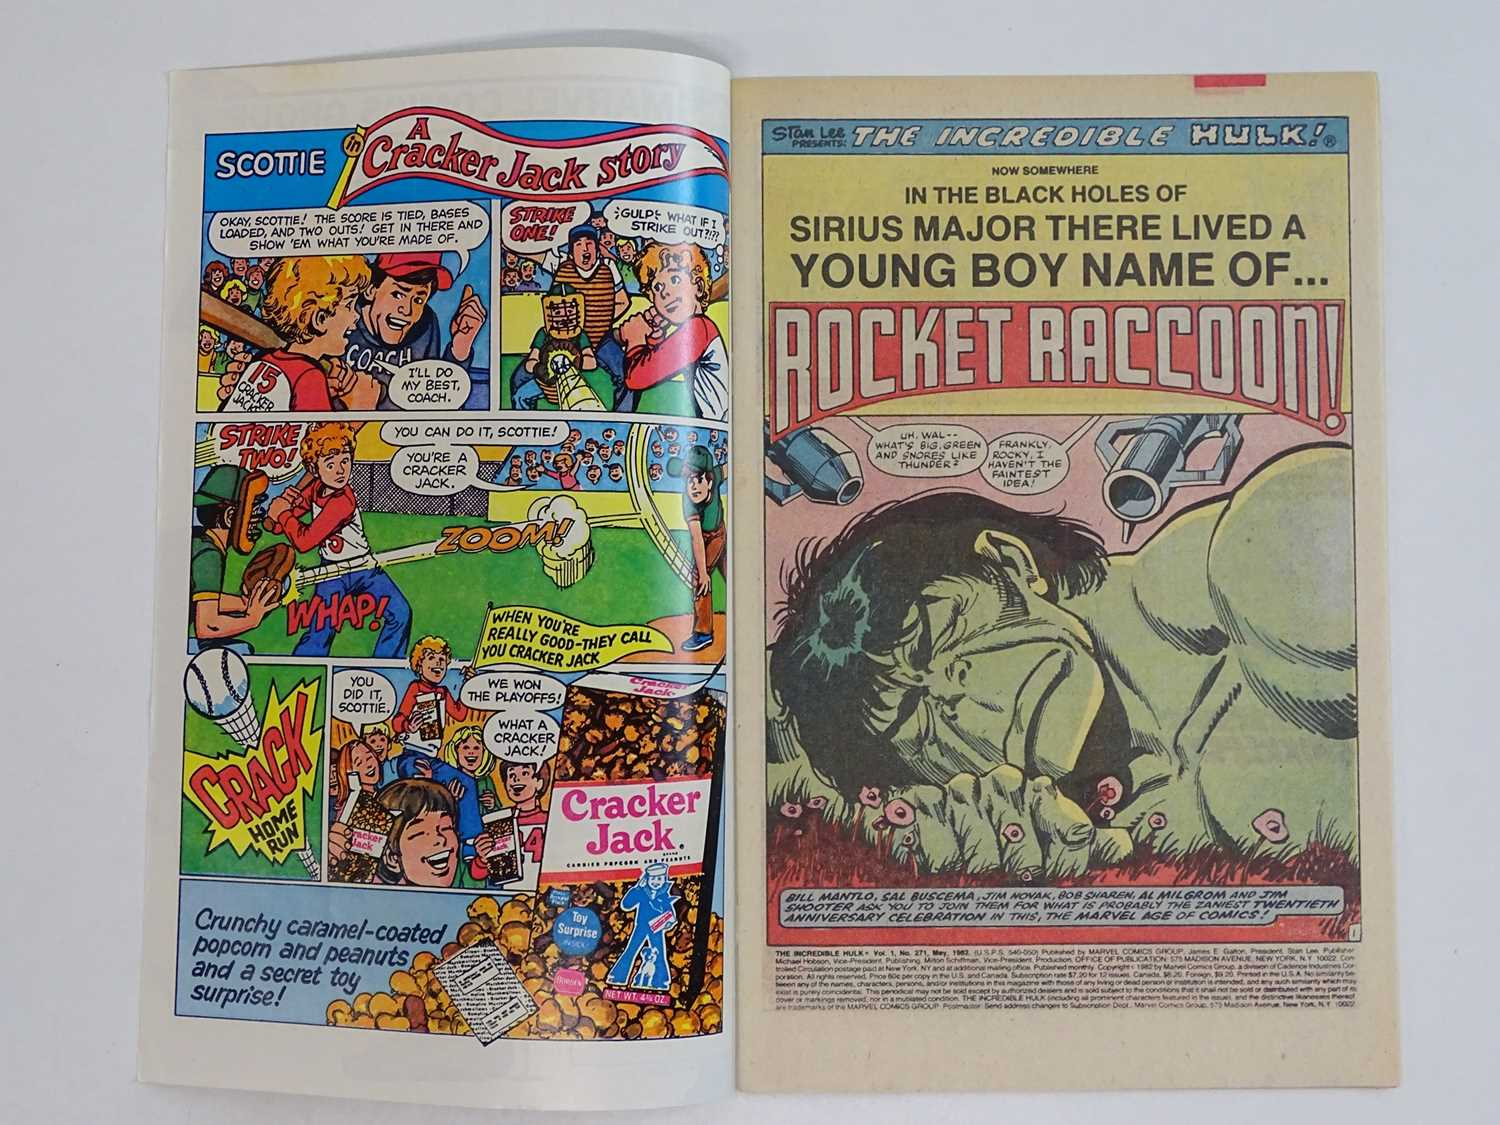 INCREDIBLE HULK #271 - (1981 - MARVEL) - First comic book appearance of Rocket Raccoon (Guardians of - Image 3 of 9